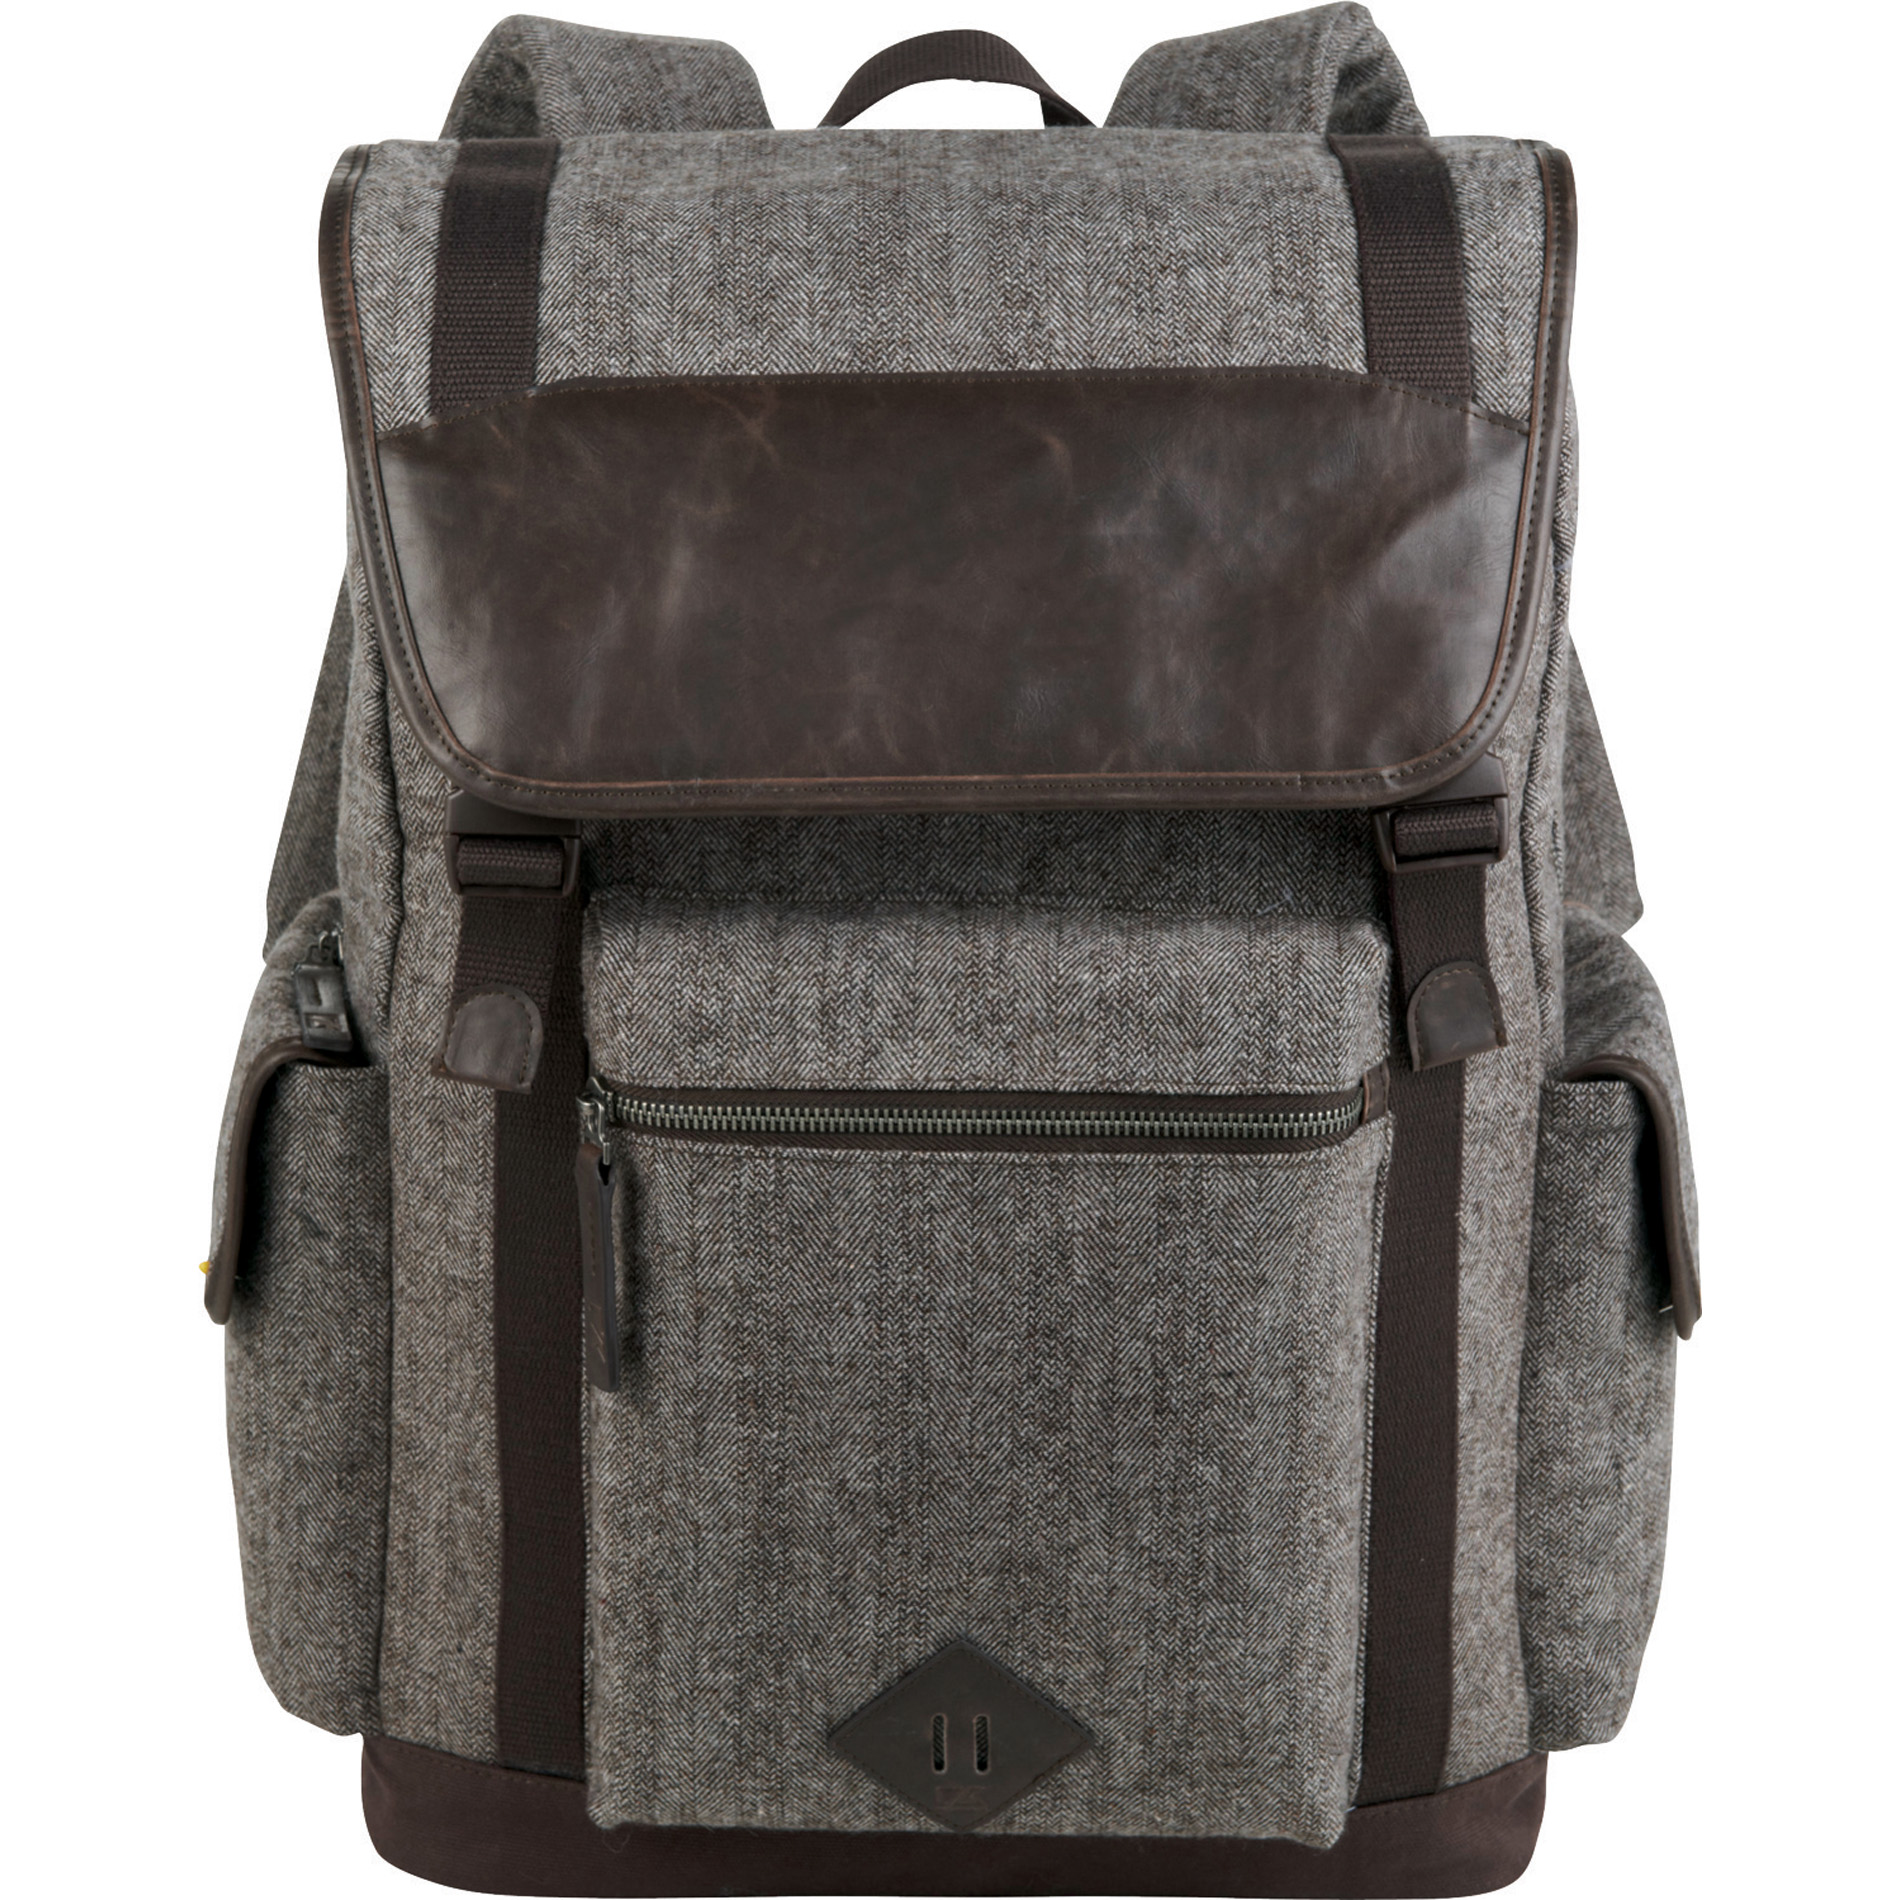 Cutter & Buck 9810-40 - Pacific 17 Computer Backpack